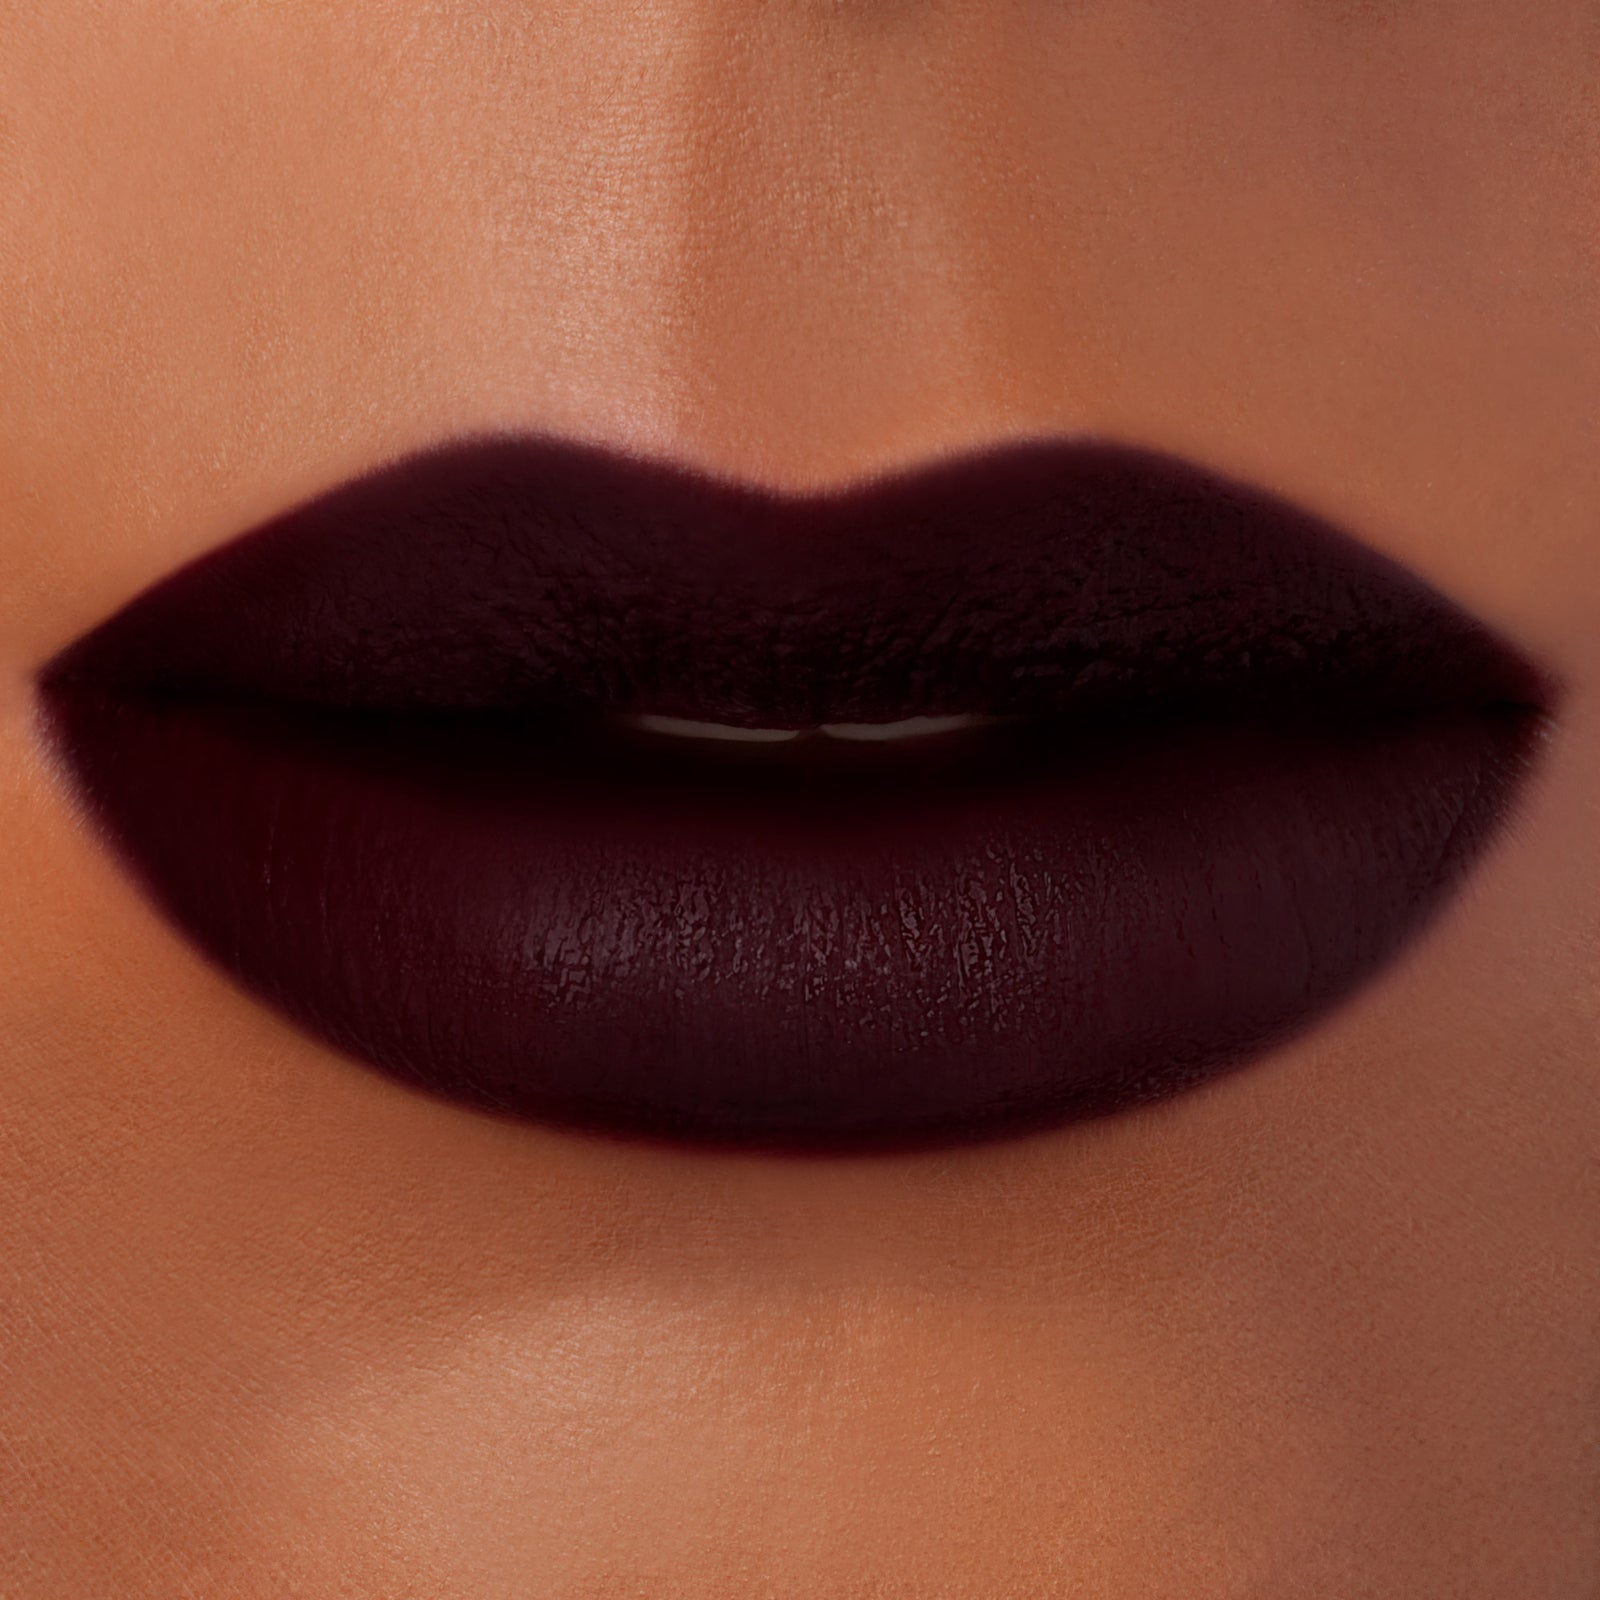 Rituel de Fille Moonseed Enchanted Lip Sheer swatch cruelty-free berry lipstick